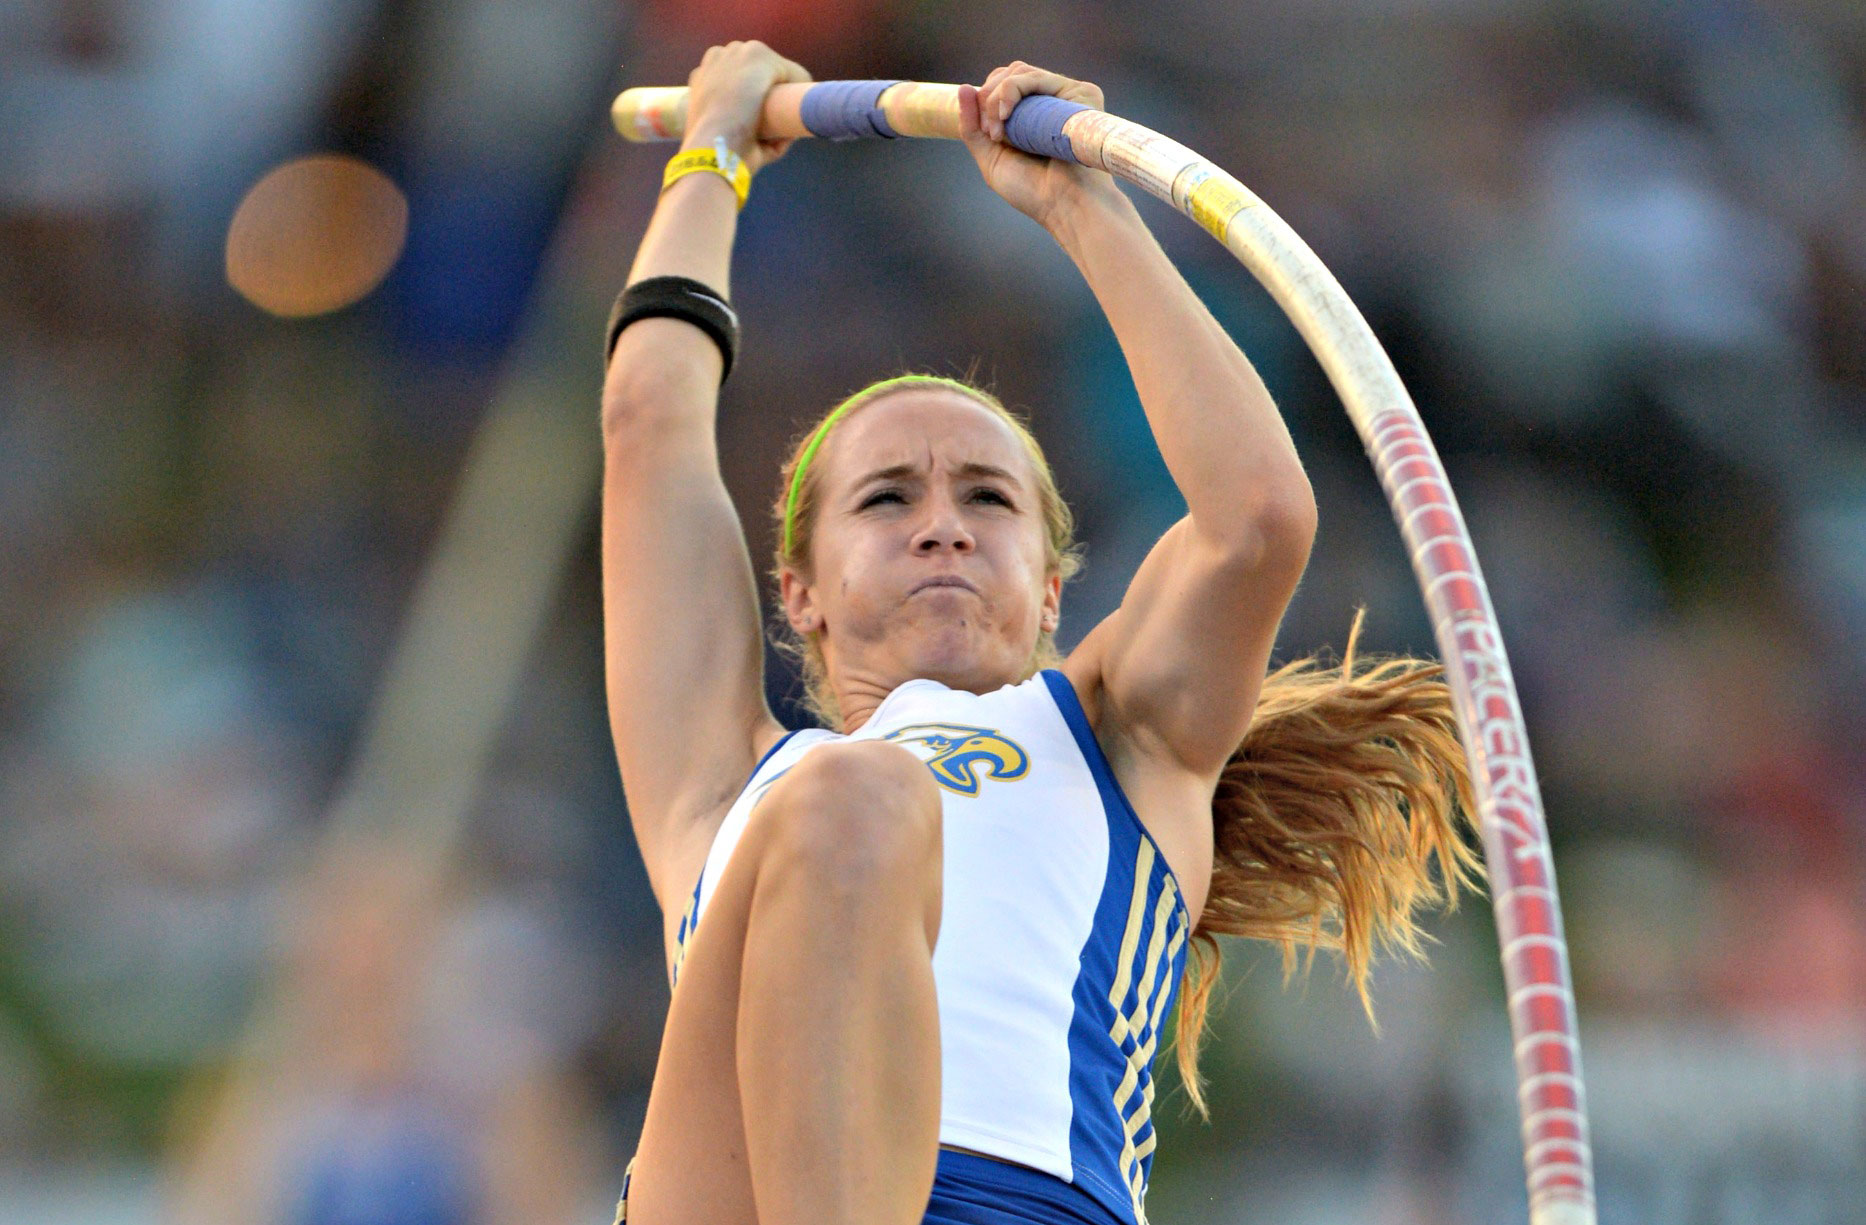 Second Team's Kaitlyn Merritt of Santa Margarita (Photo: Kirby Lee, USA TODAY Sports)